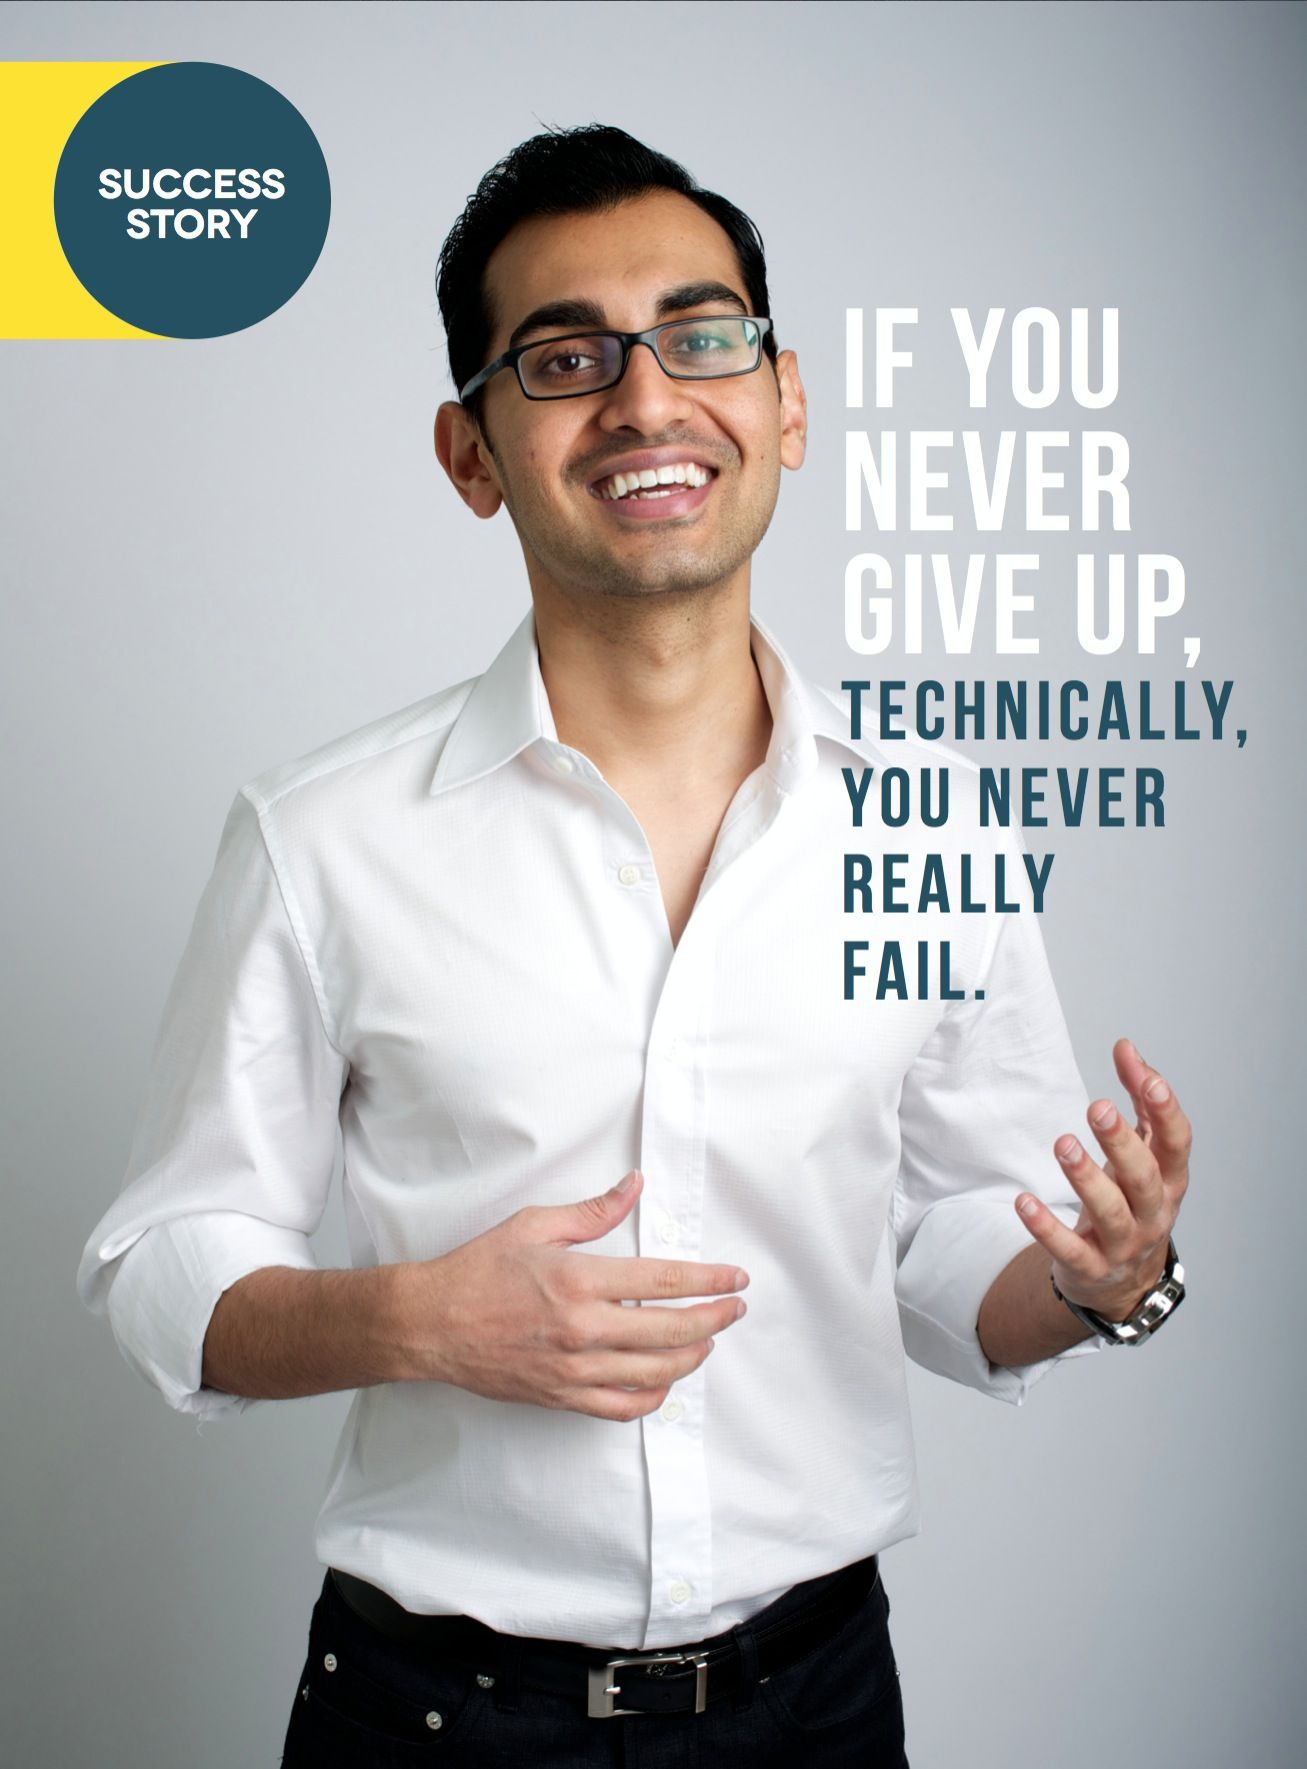 """""""If you never give up, technically you never really fail"""" - Interviewee Neil Patel   (For a FREE TRIAL to Foundr Magazine go to the link at the top of the page under the board description)."""